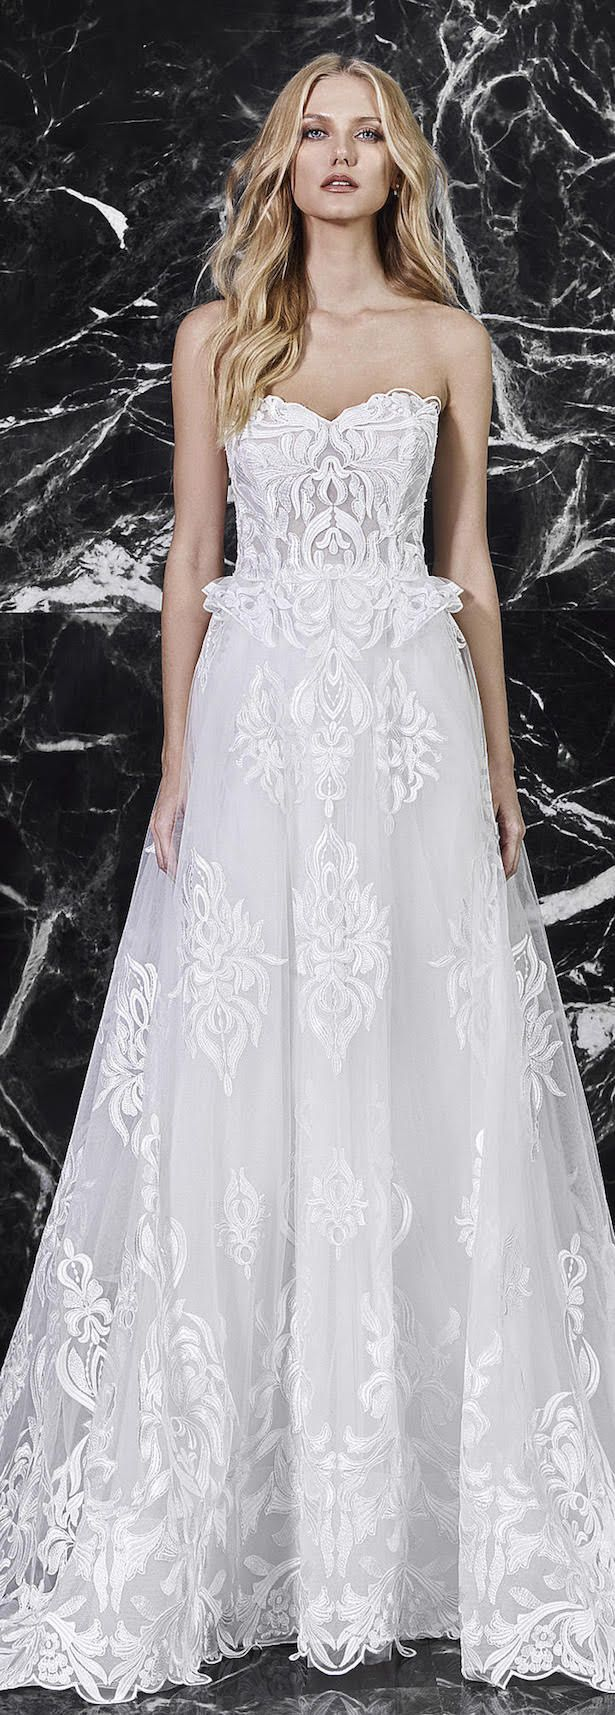 Wedding dresses by victoria kyriakides bridal spring collection